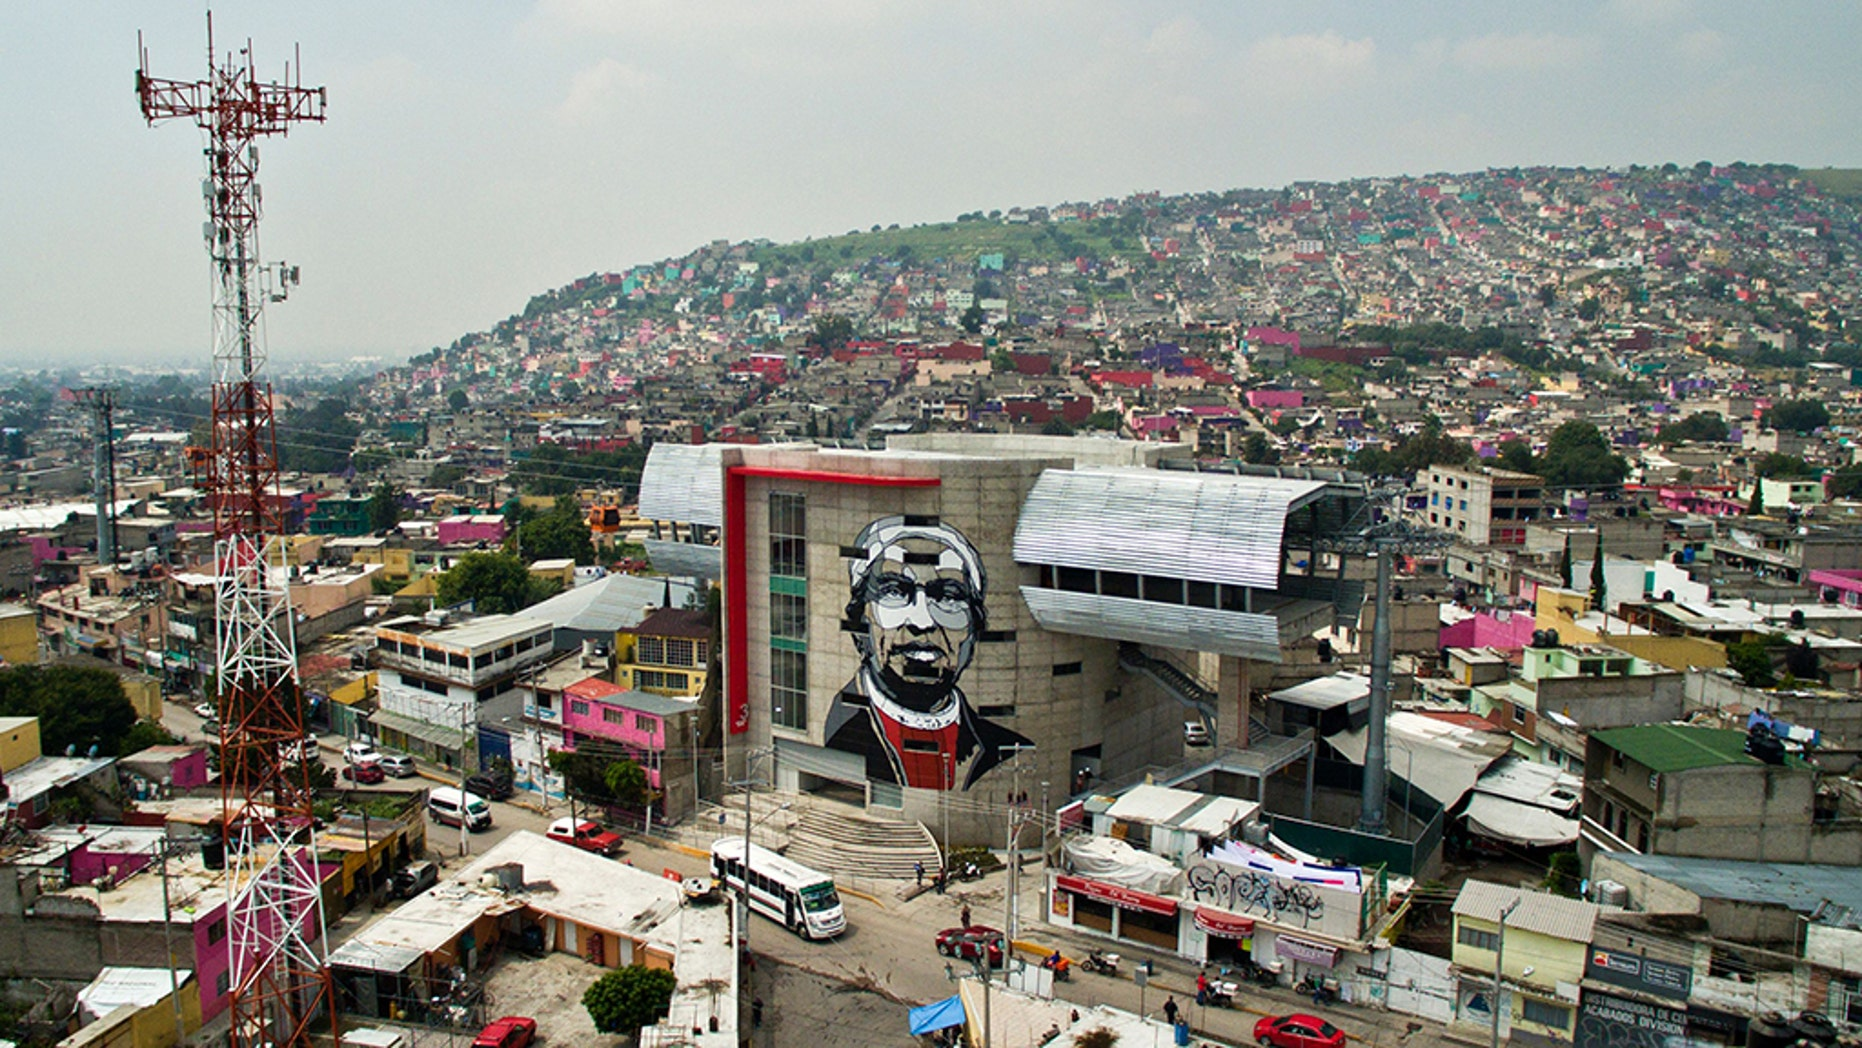 View of a cable car station decorated with a mural of Icelandic artist Guido Van Helten at a poor neighborhood in Ecatepec, Mexico on August 25, 2016.